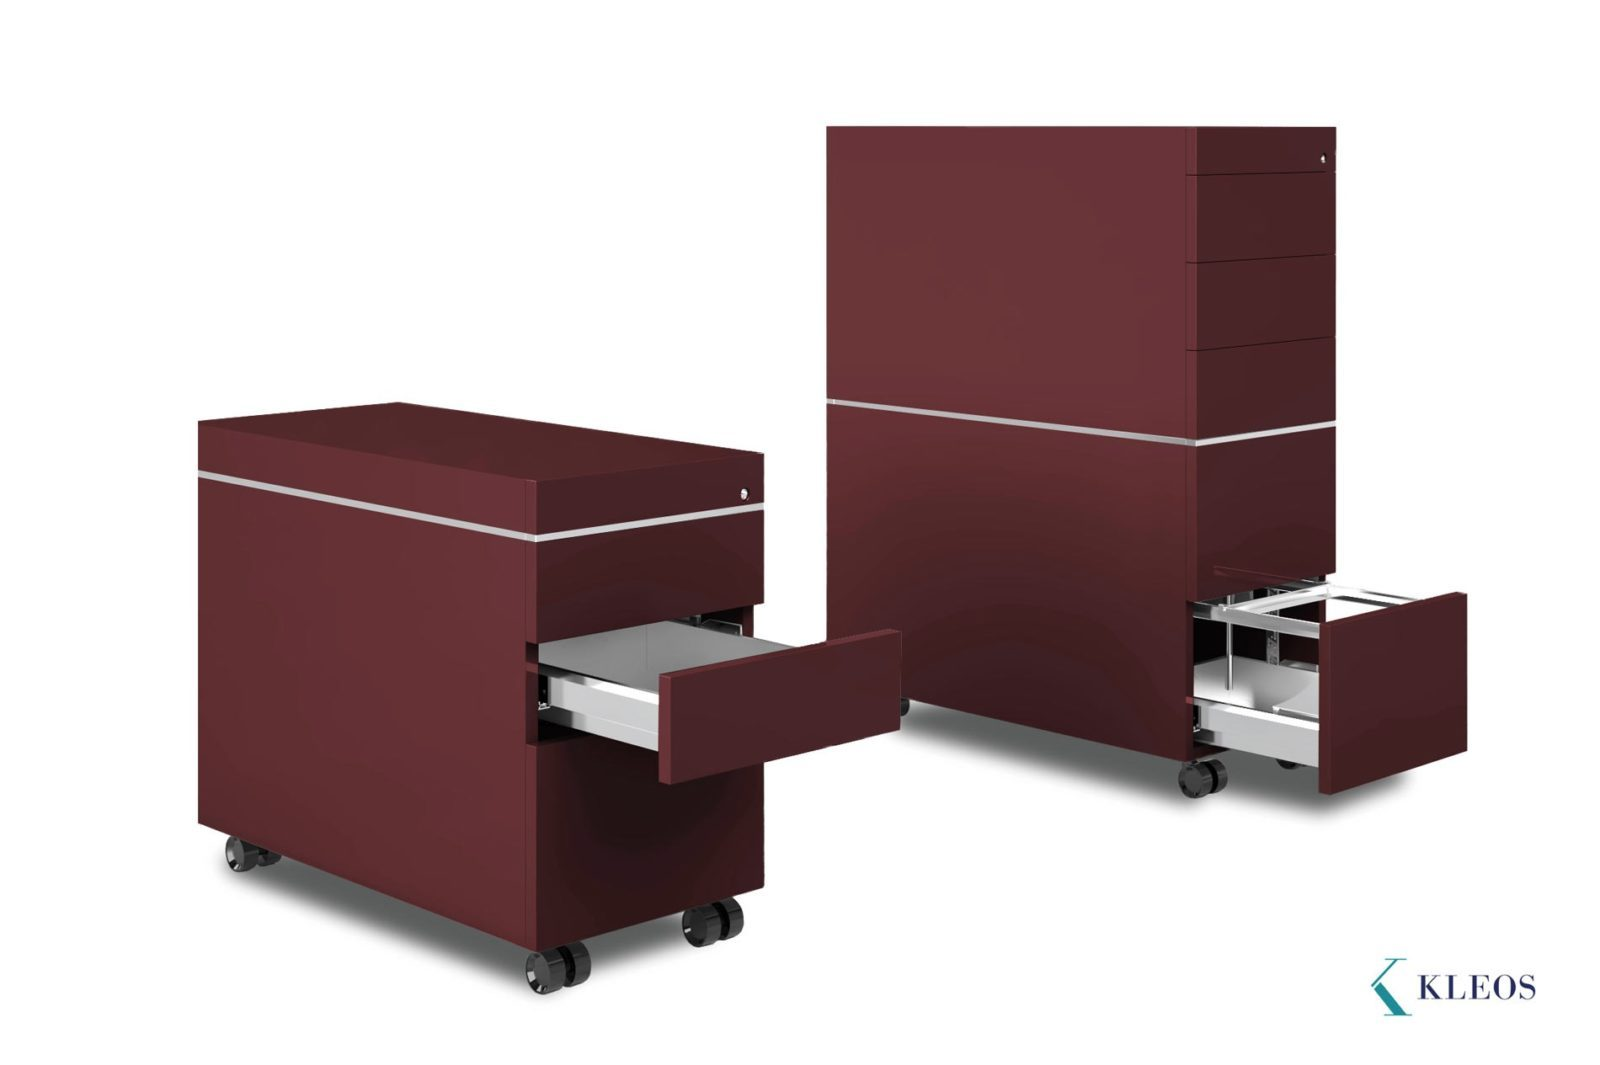 BA4.30 Office drawer units by Kleos